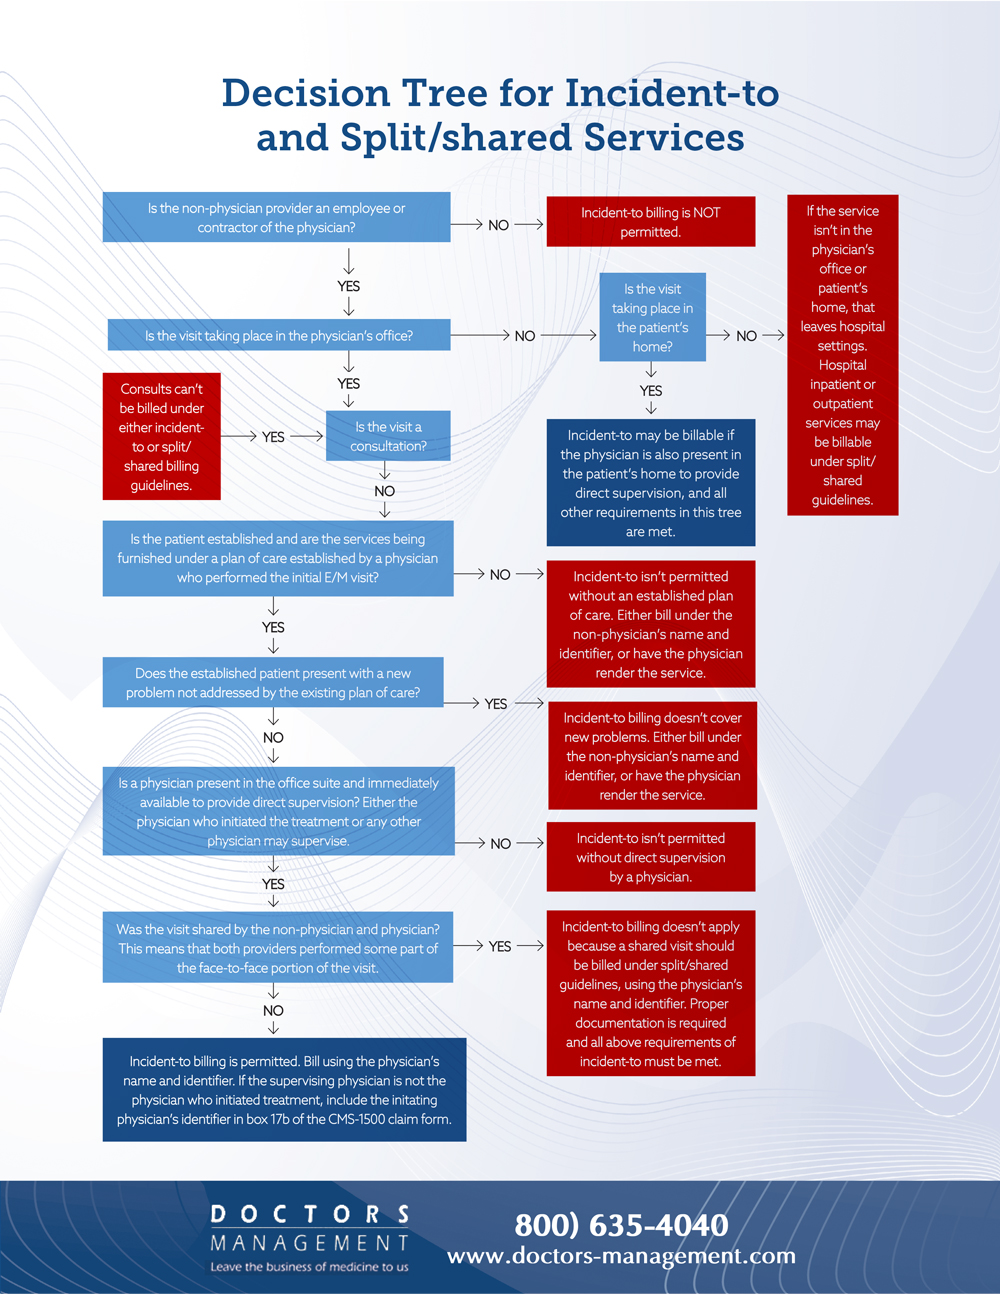 Decision Tree for Incident-to